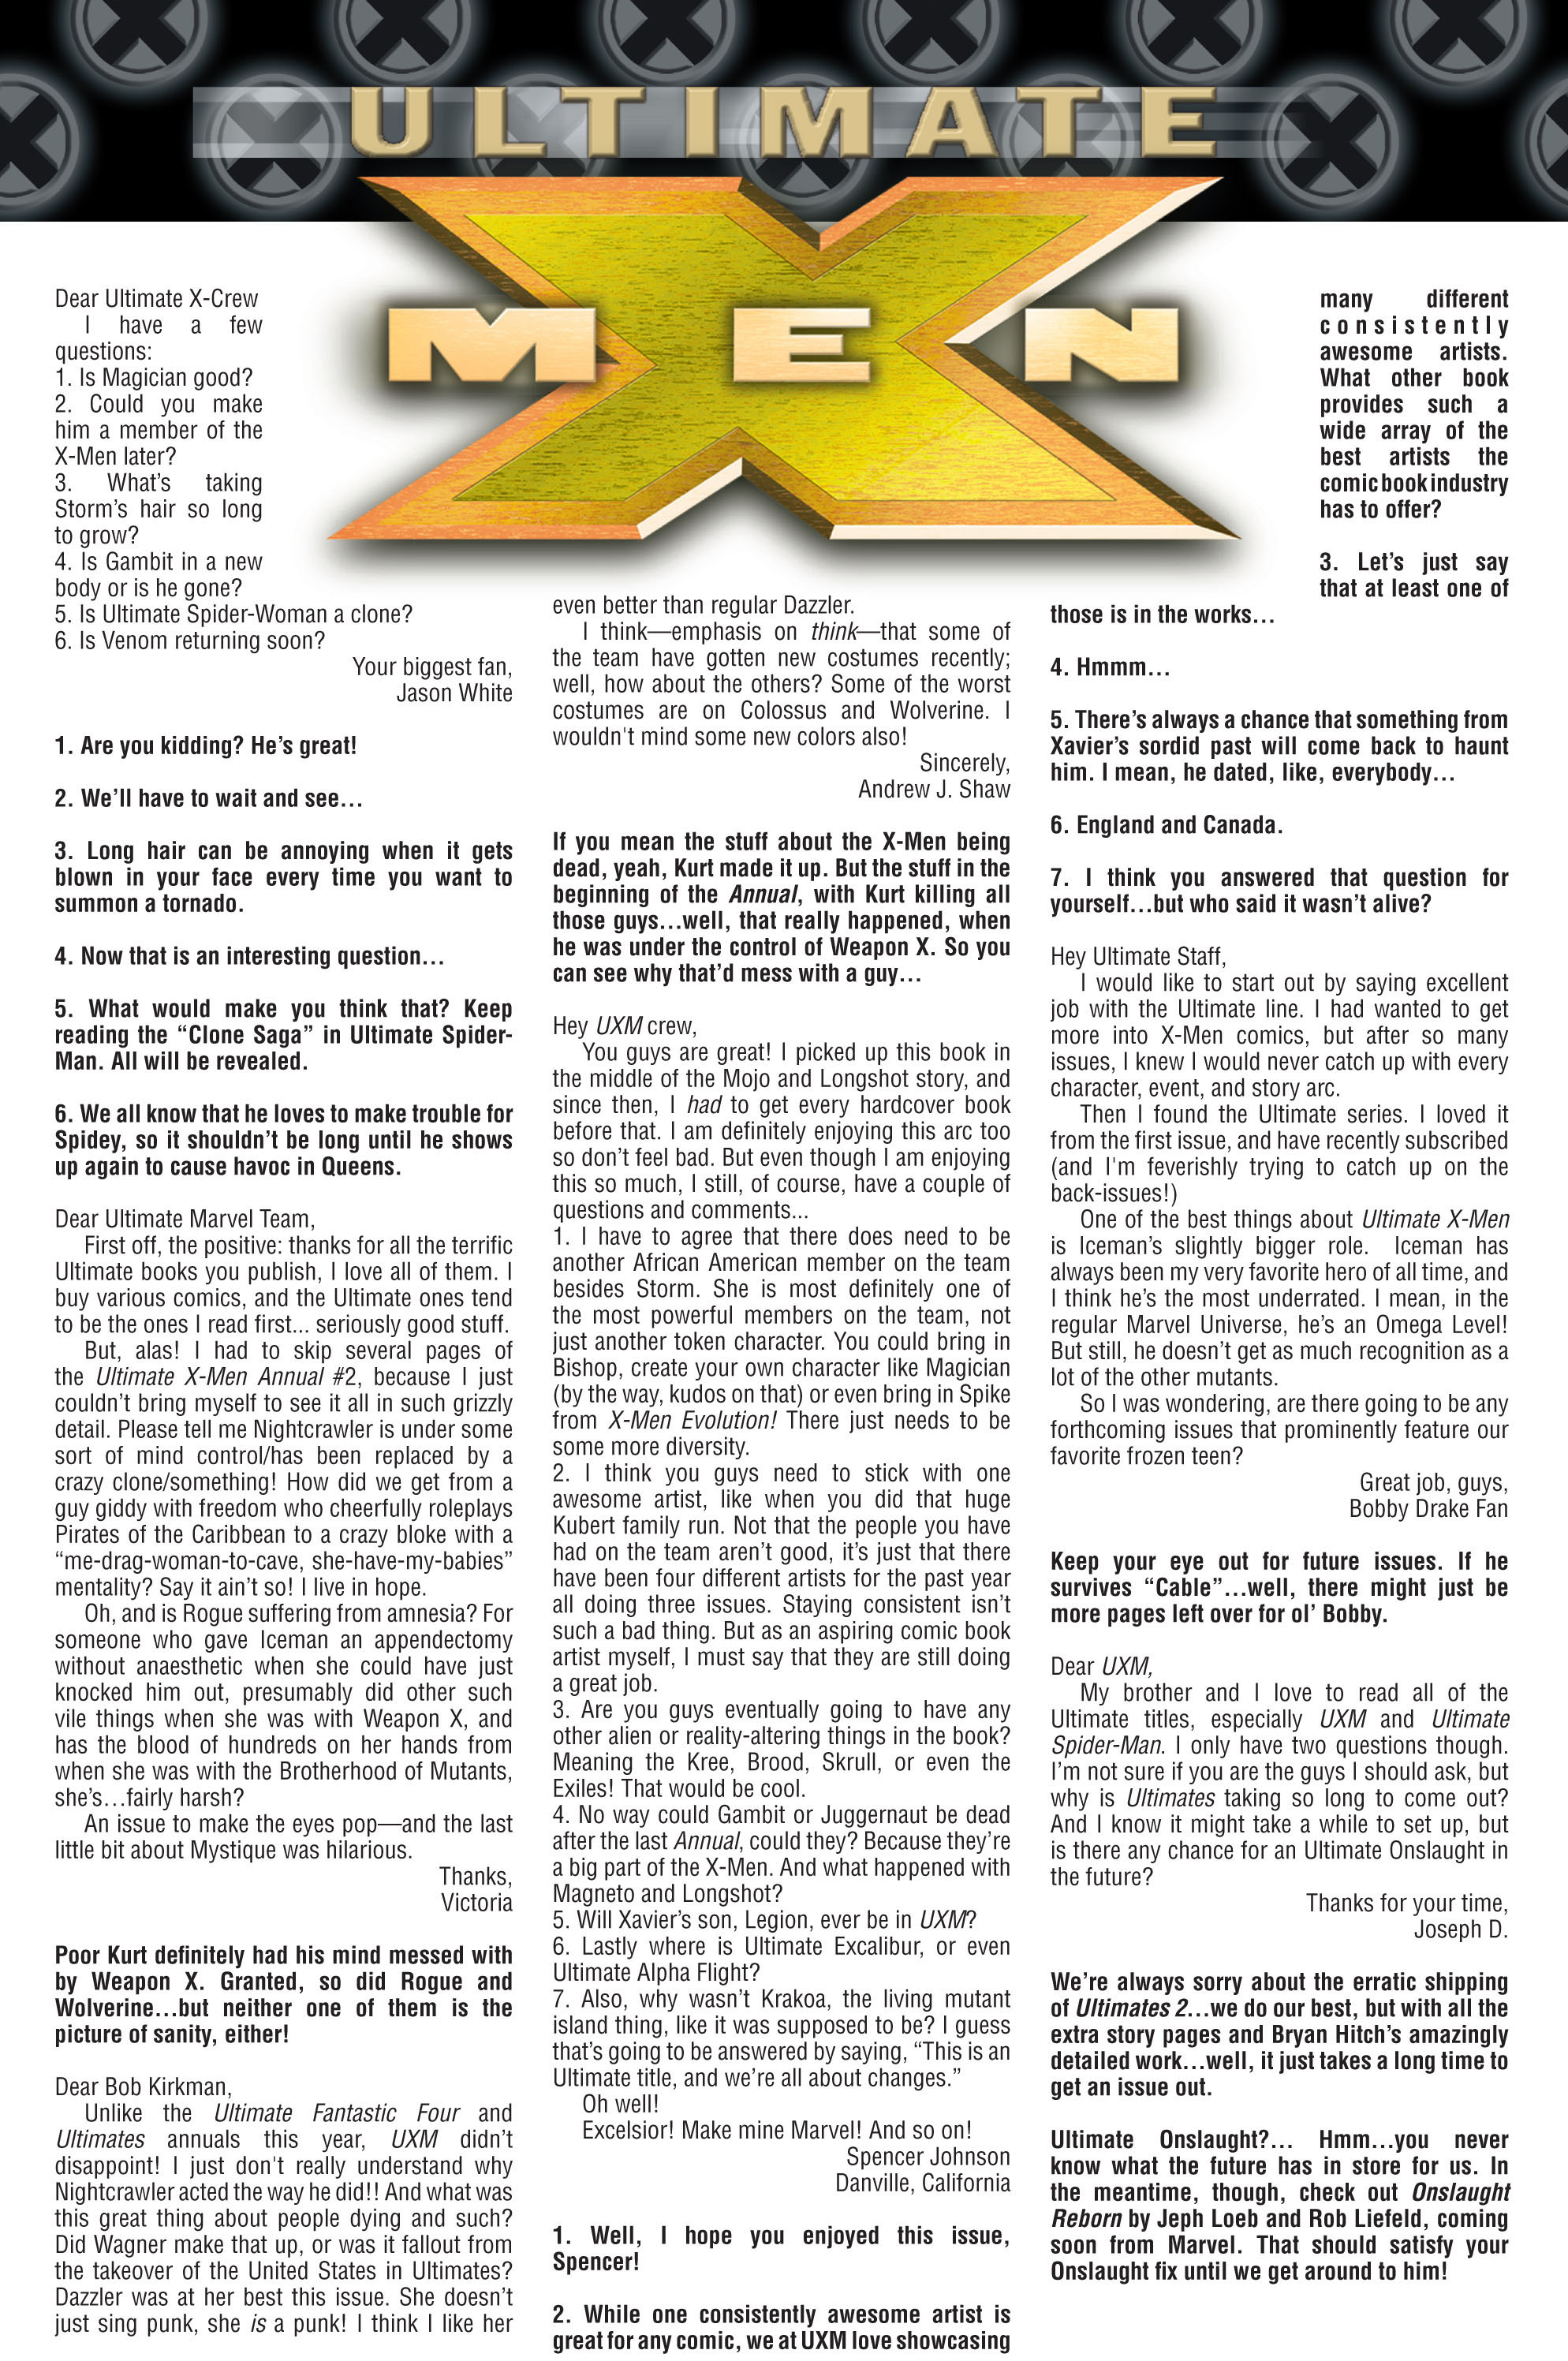 Read online Ultimate X-Men comic -  Issue #76 - 24